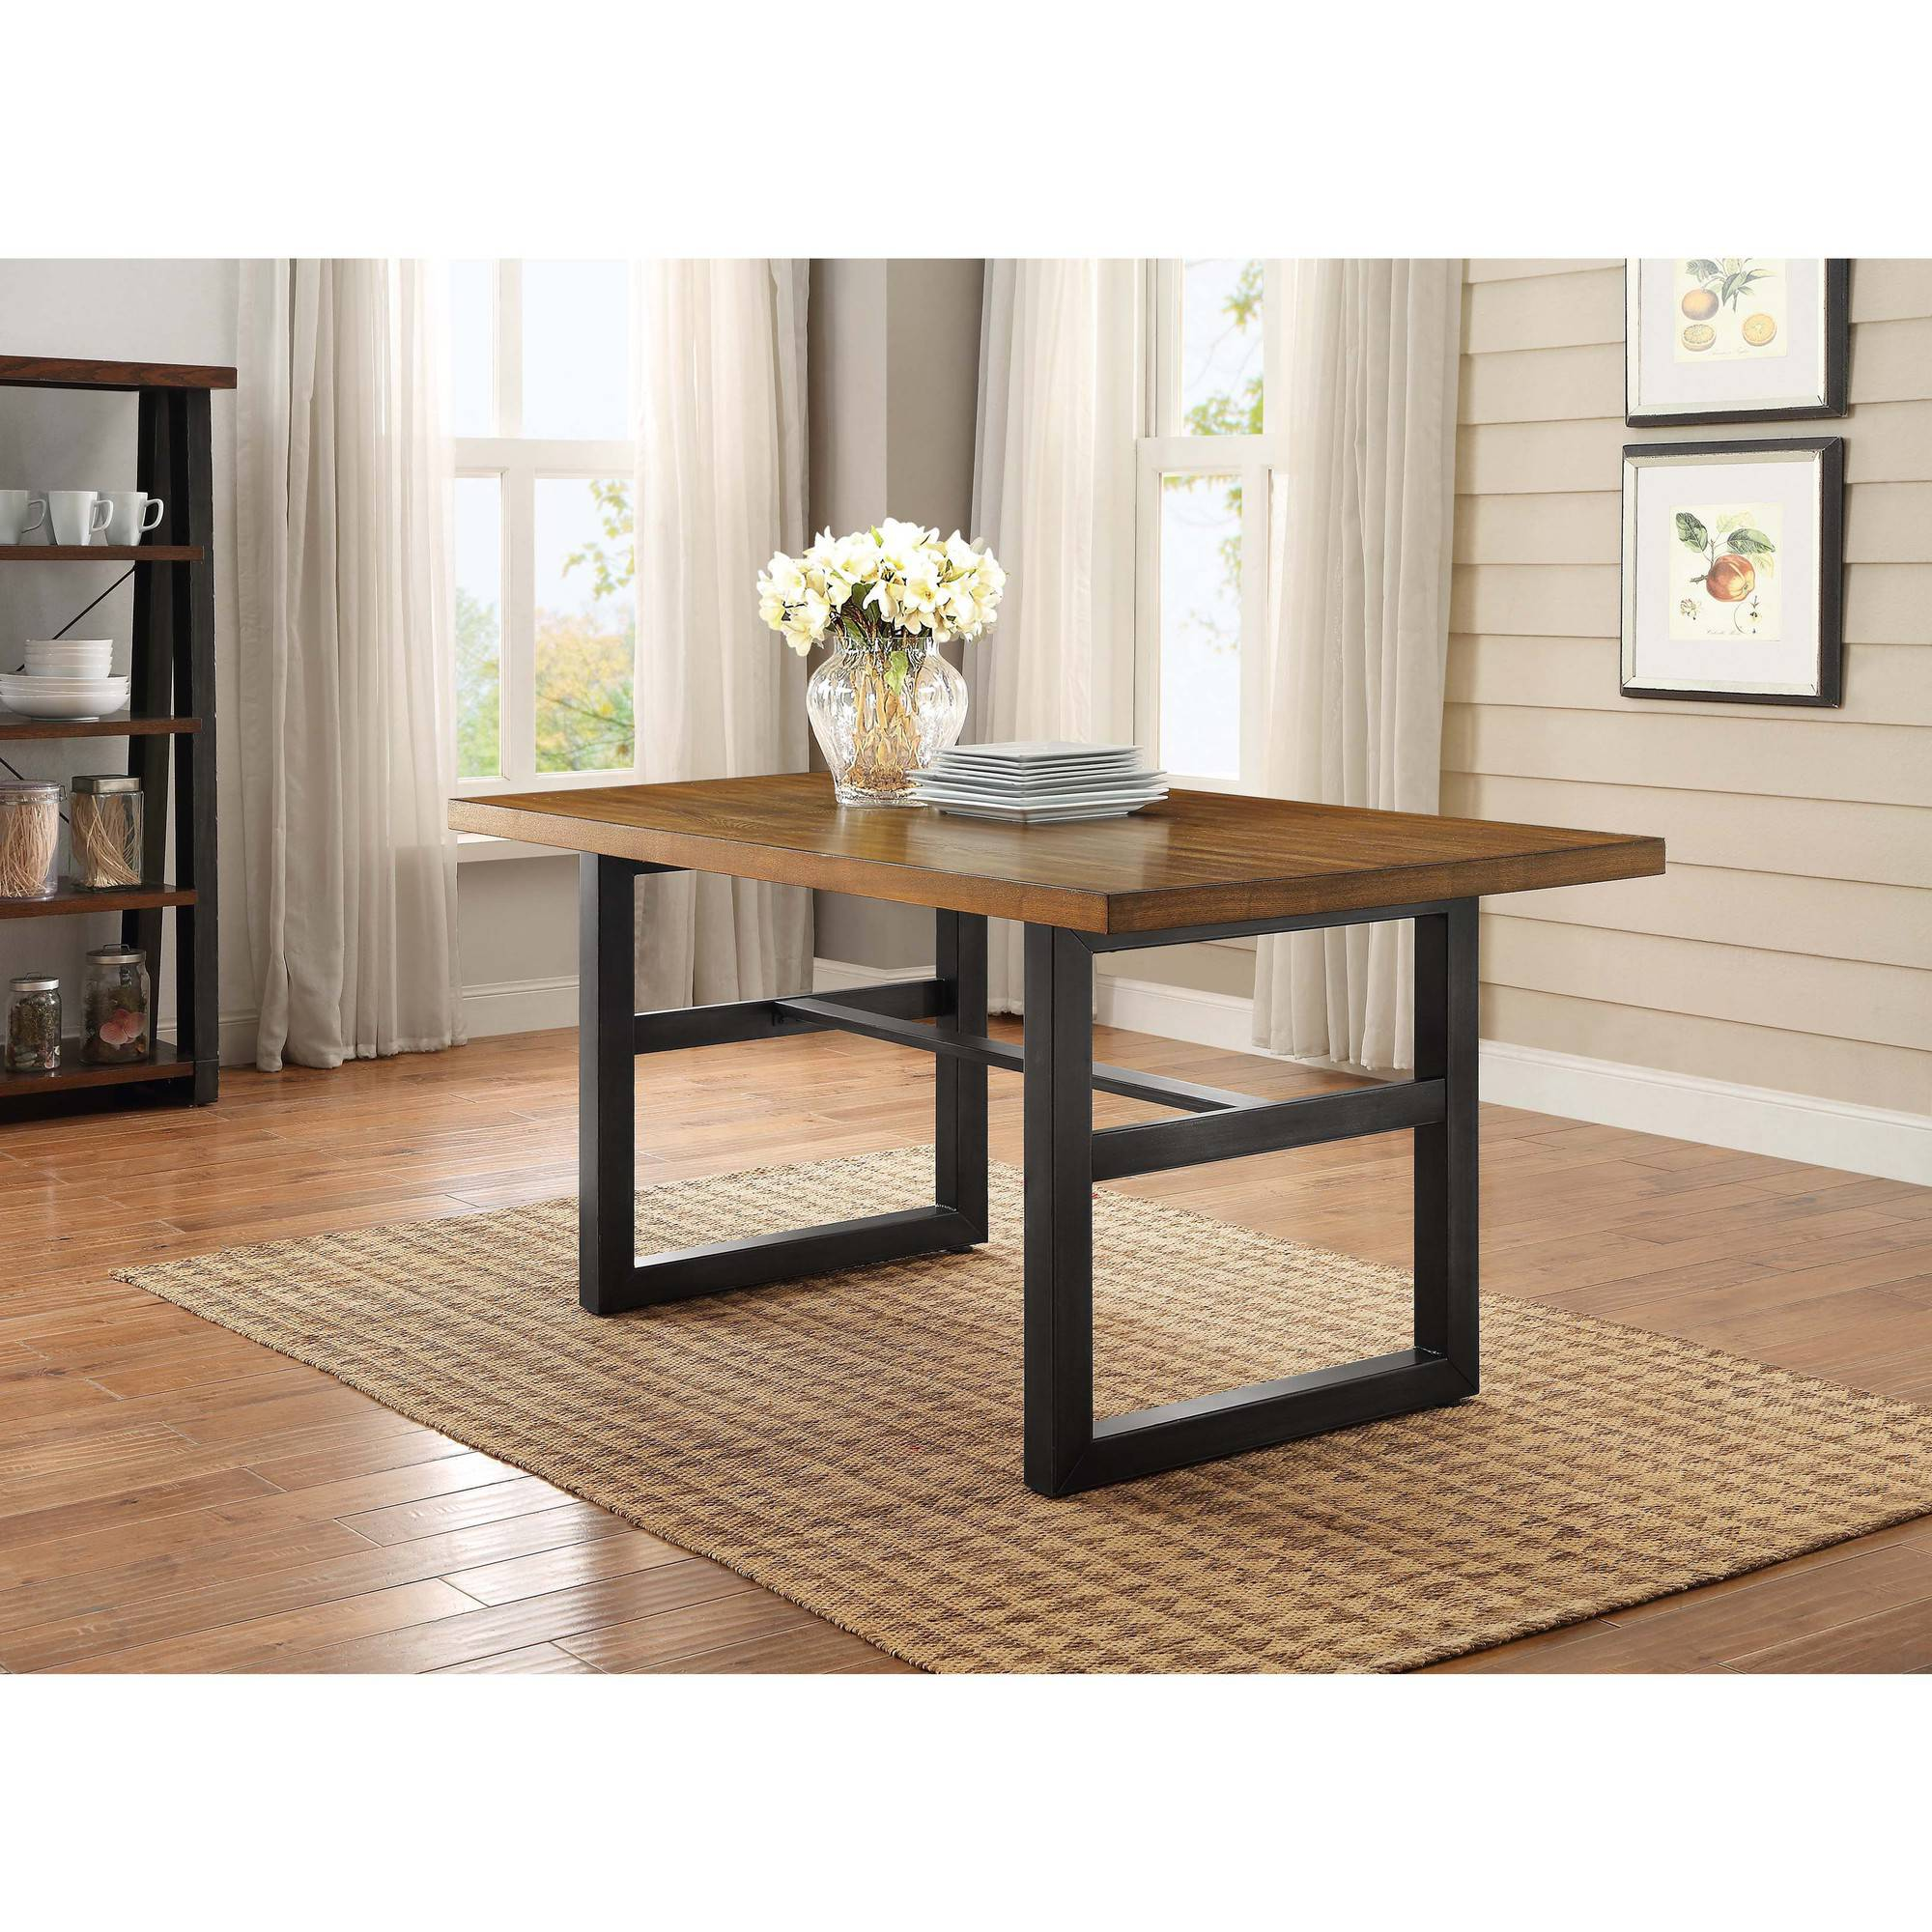 better homes and gardens mercer dining table vintage oak finish walmart com - Walmart Kitchen Tables